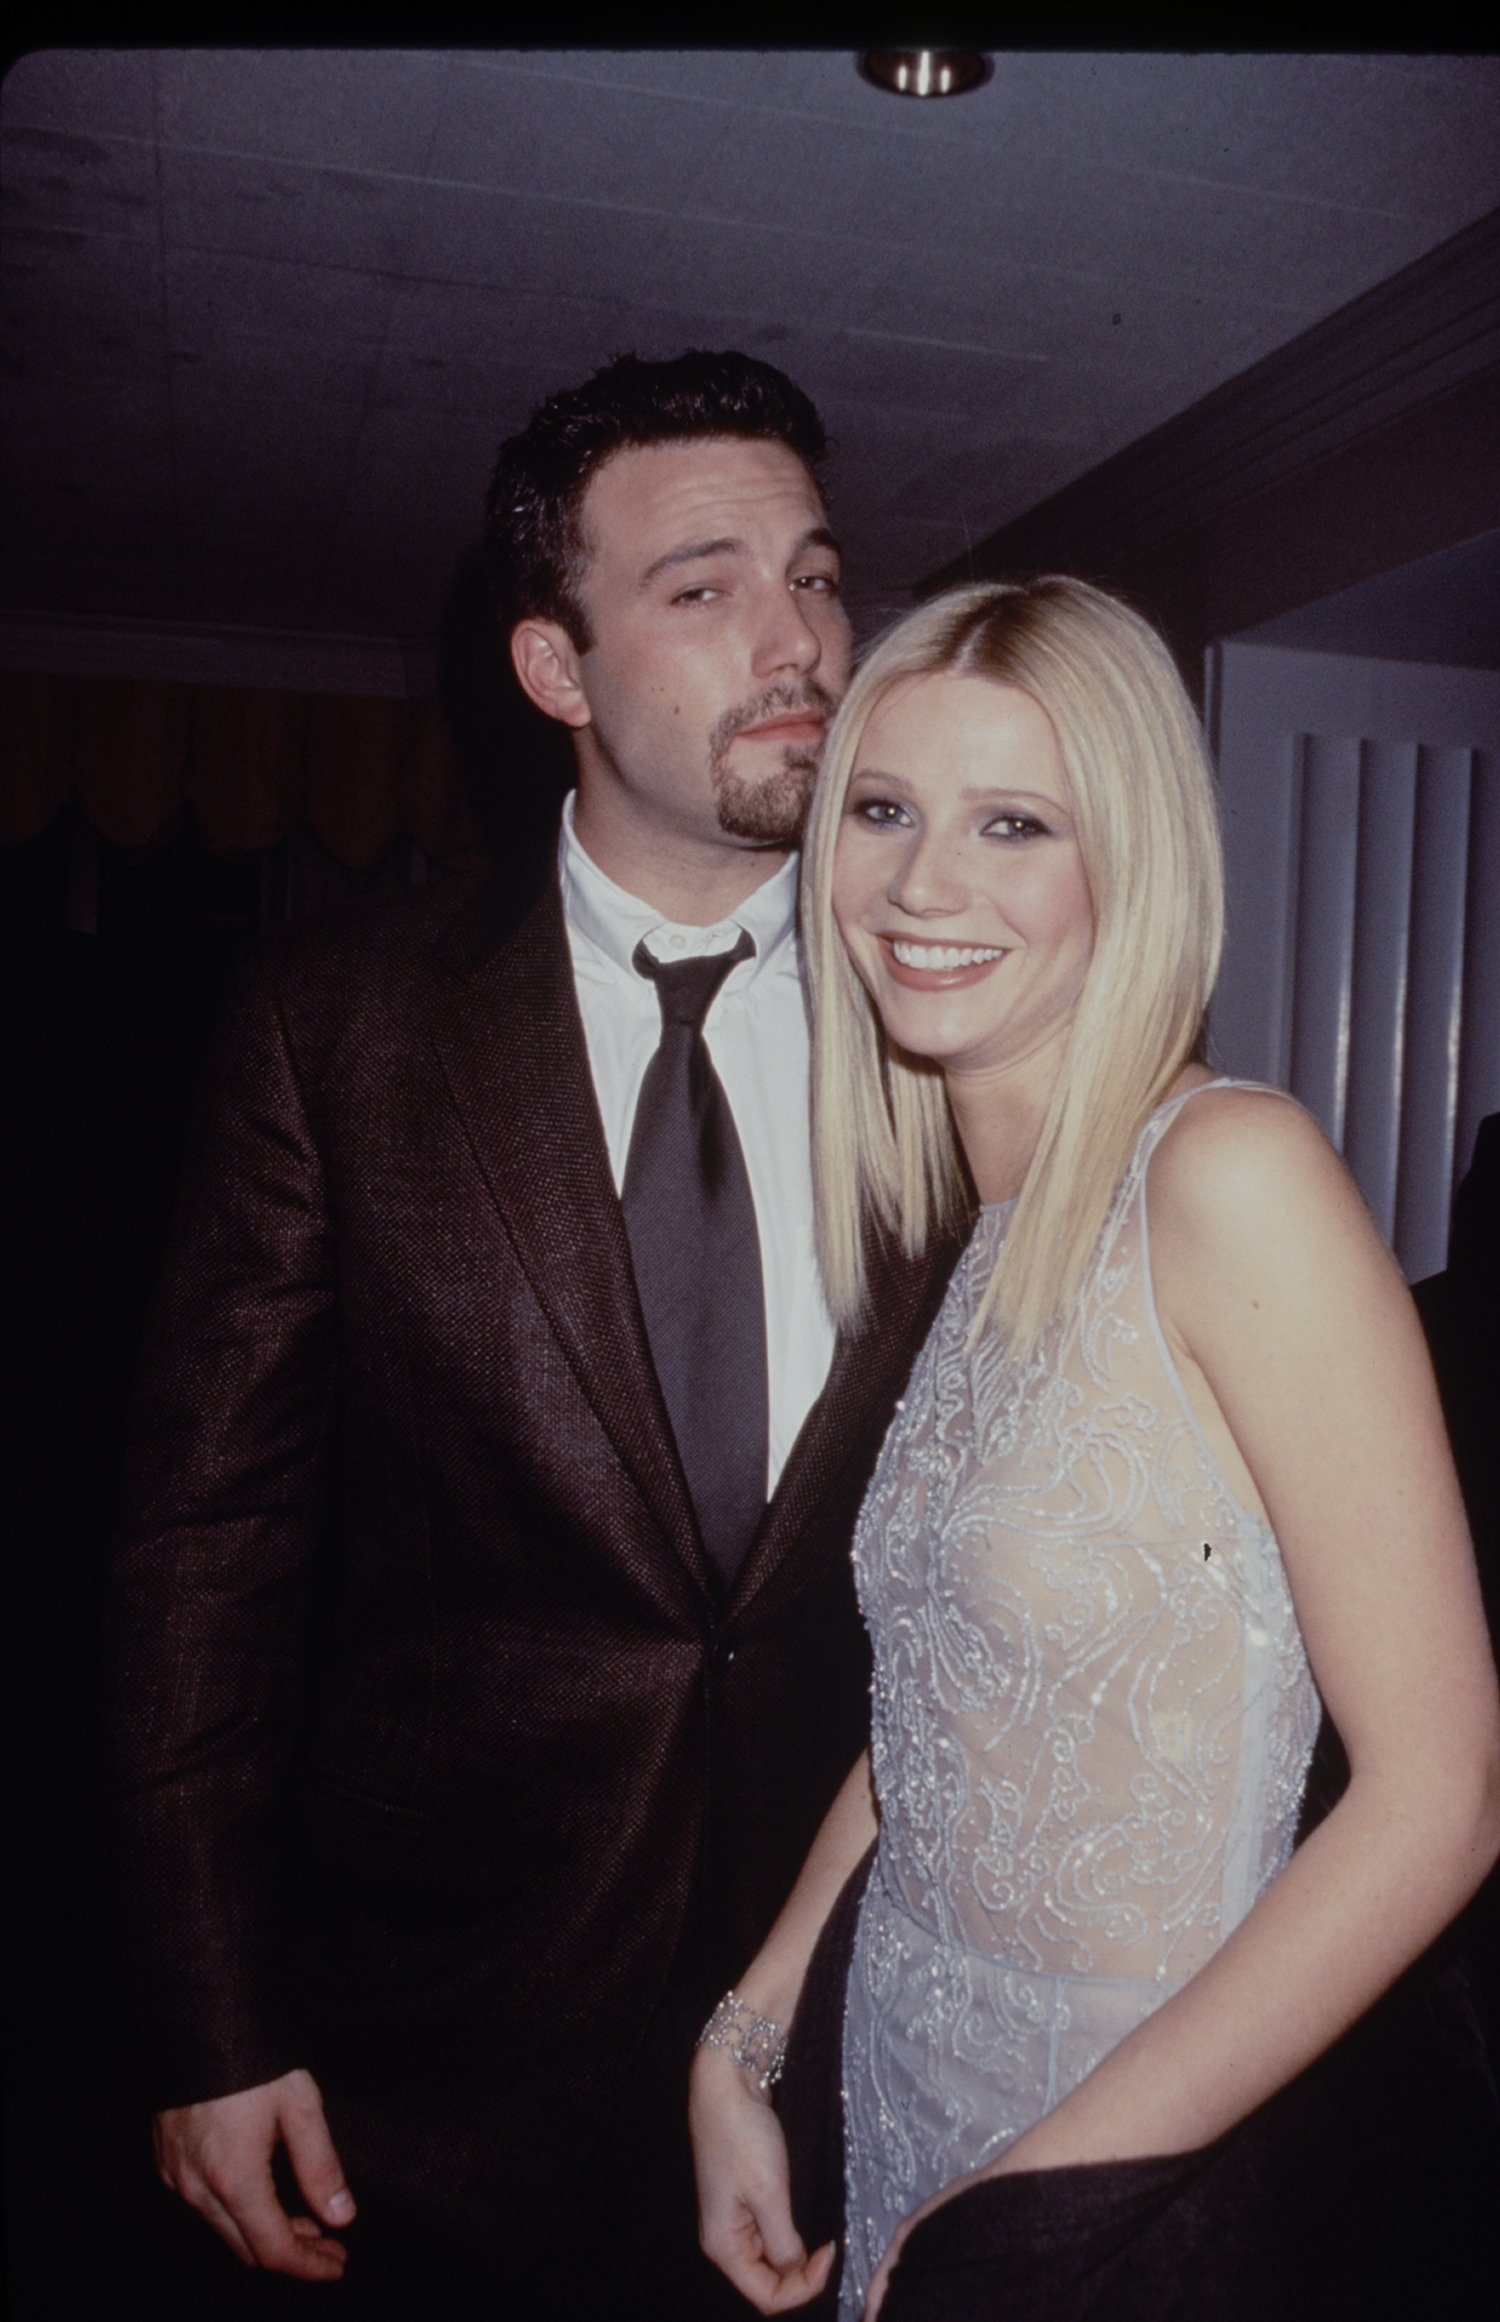 Image Credits: Getty Images / The LIFE Picture Collection | Actors Ben Affleck and Gwyneth Paltrow.